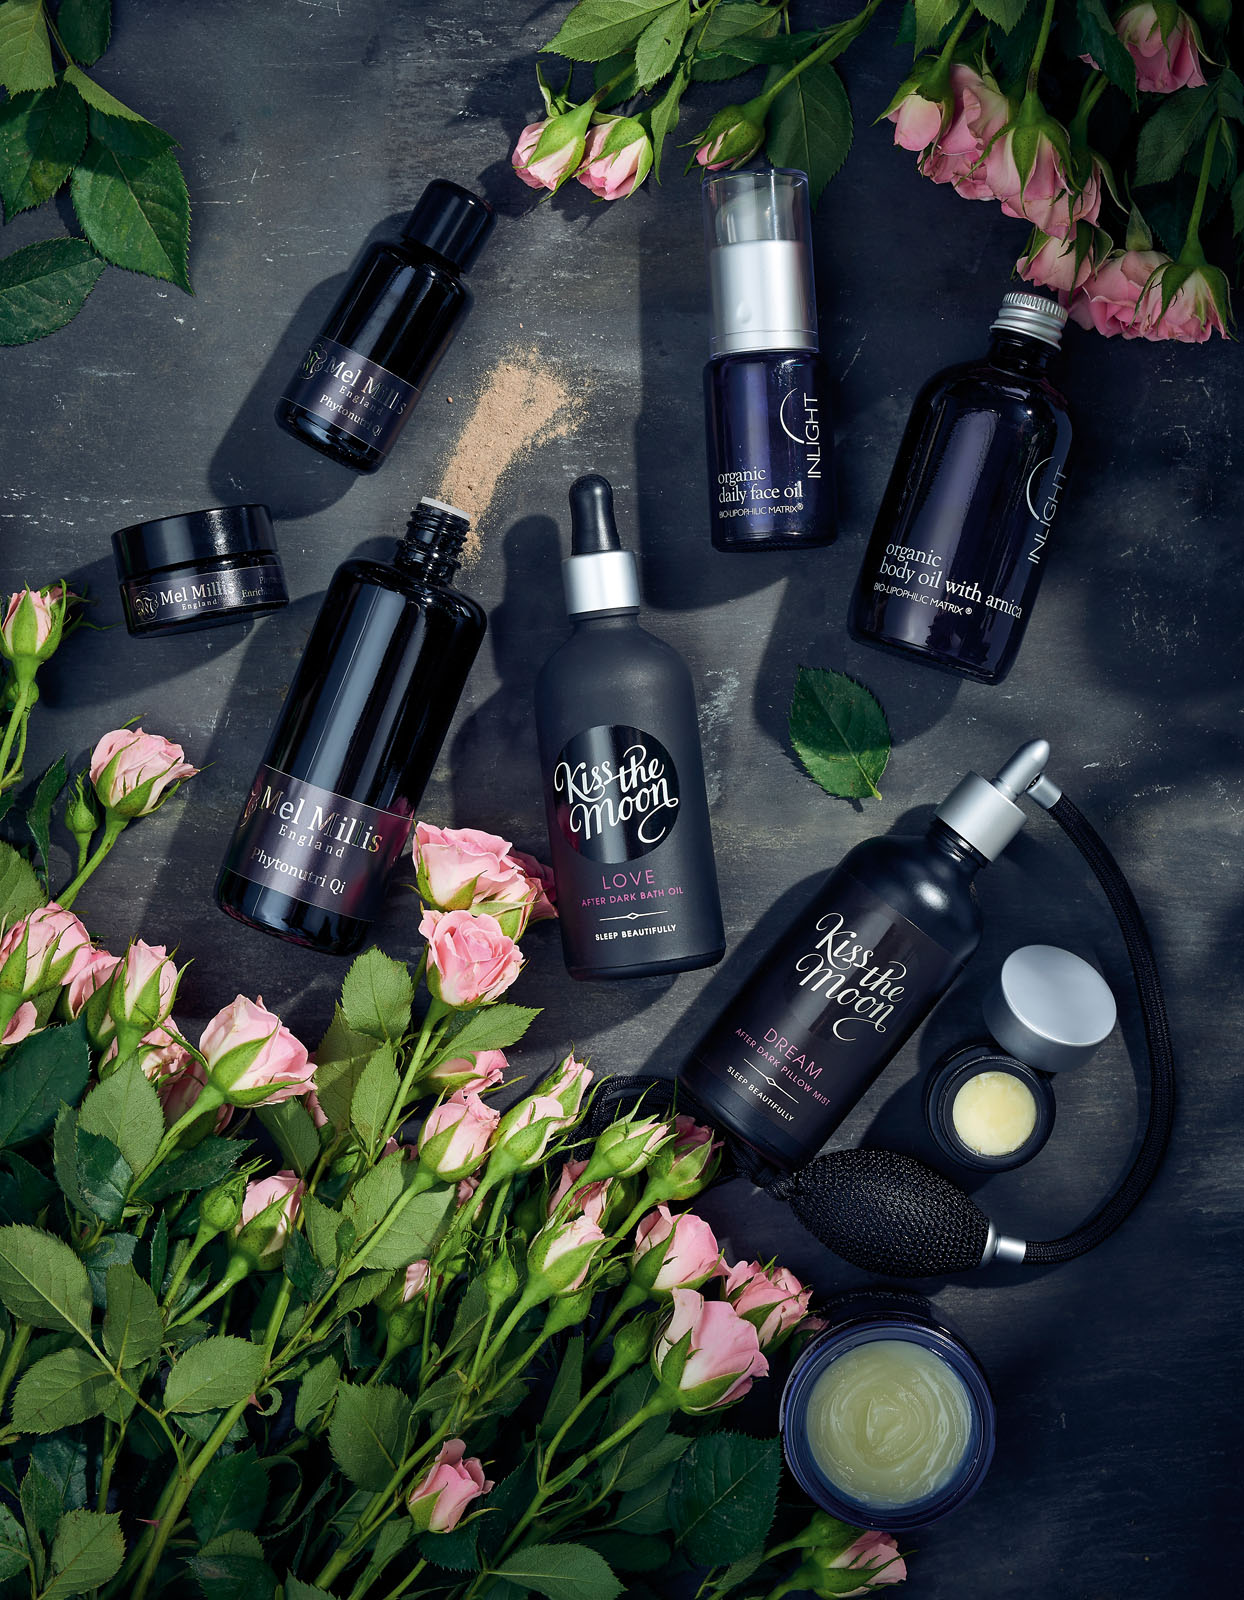 Black beauty products on a dark background with flowers